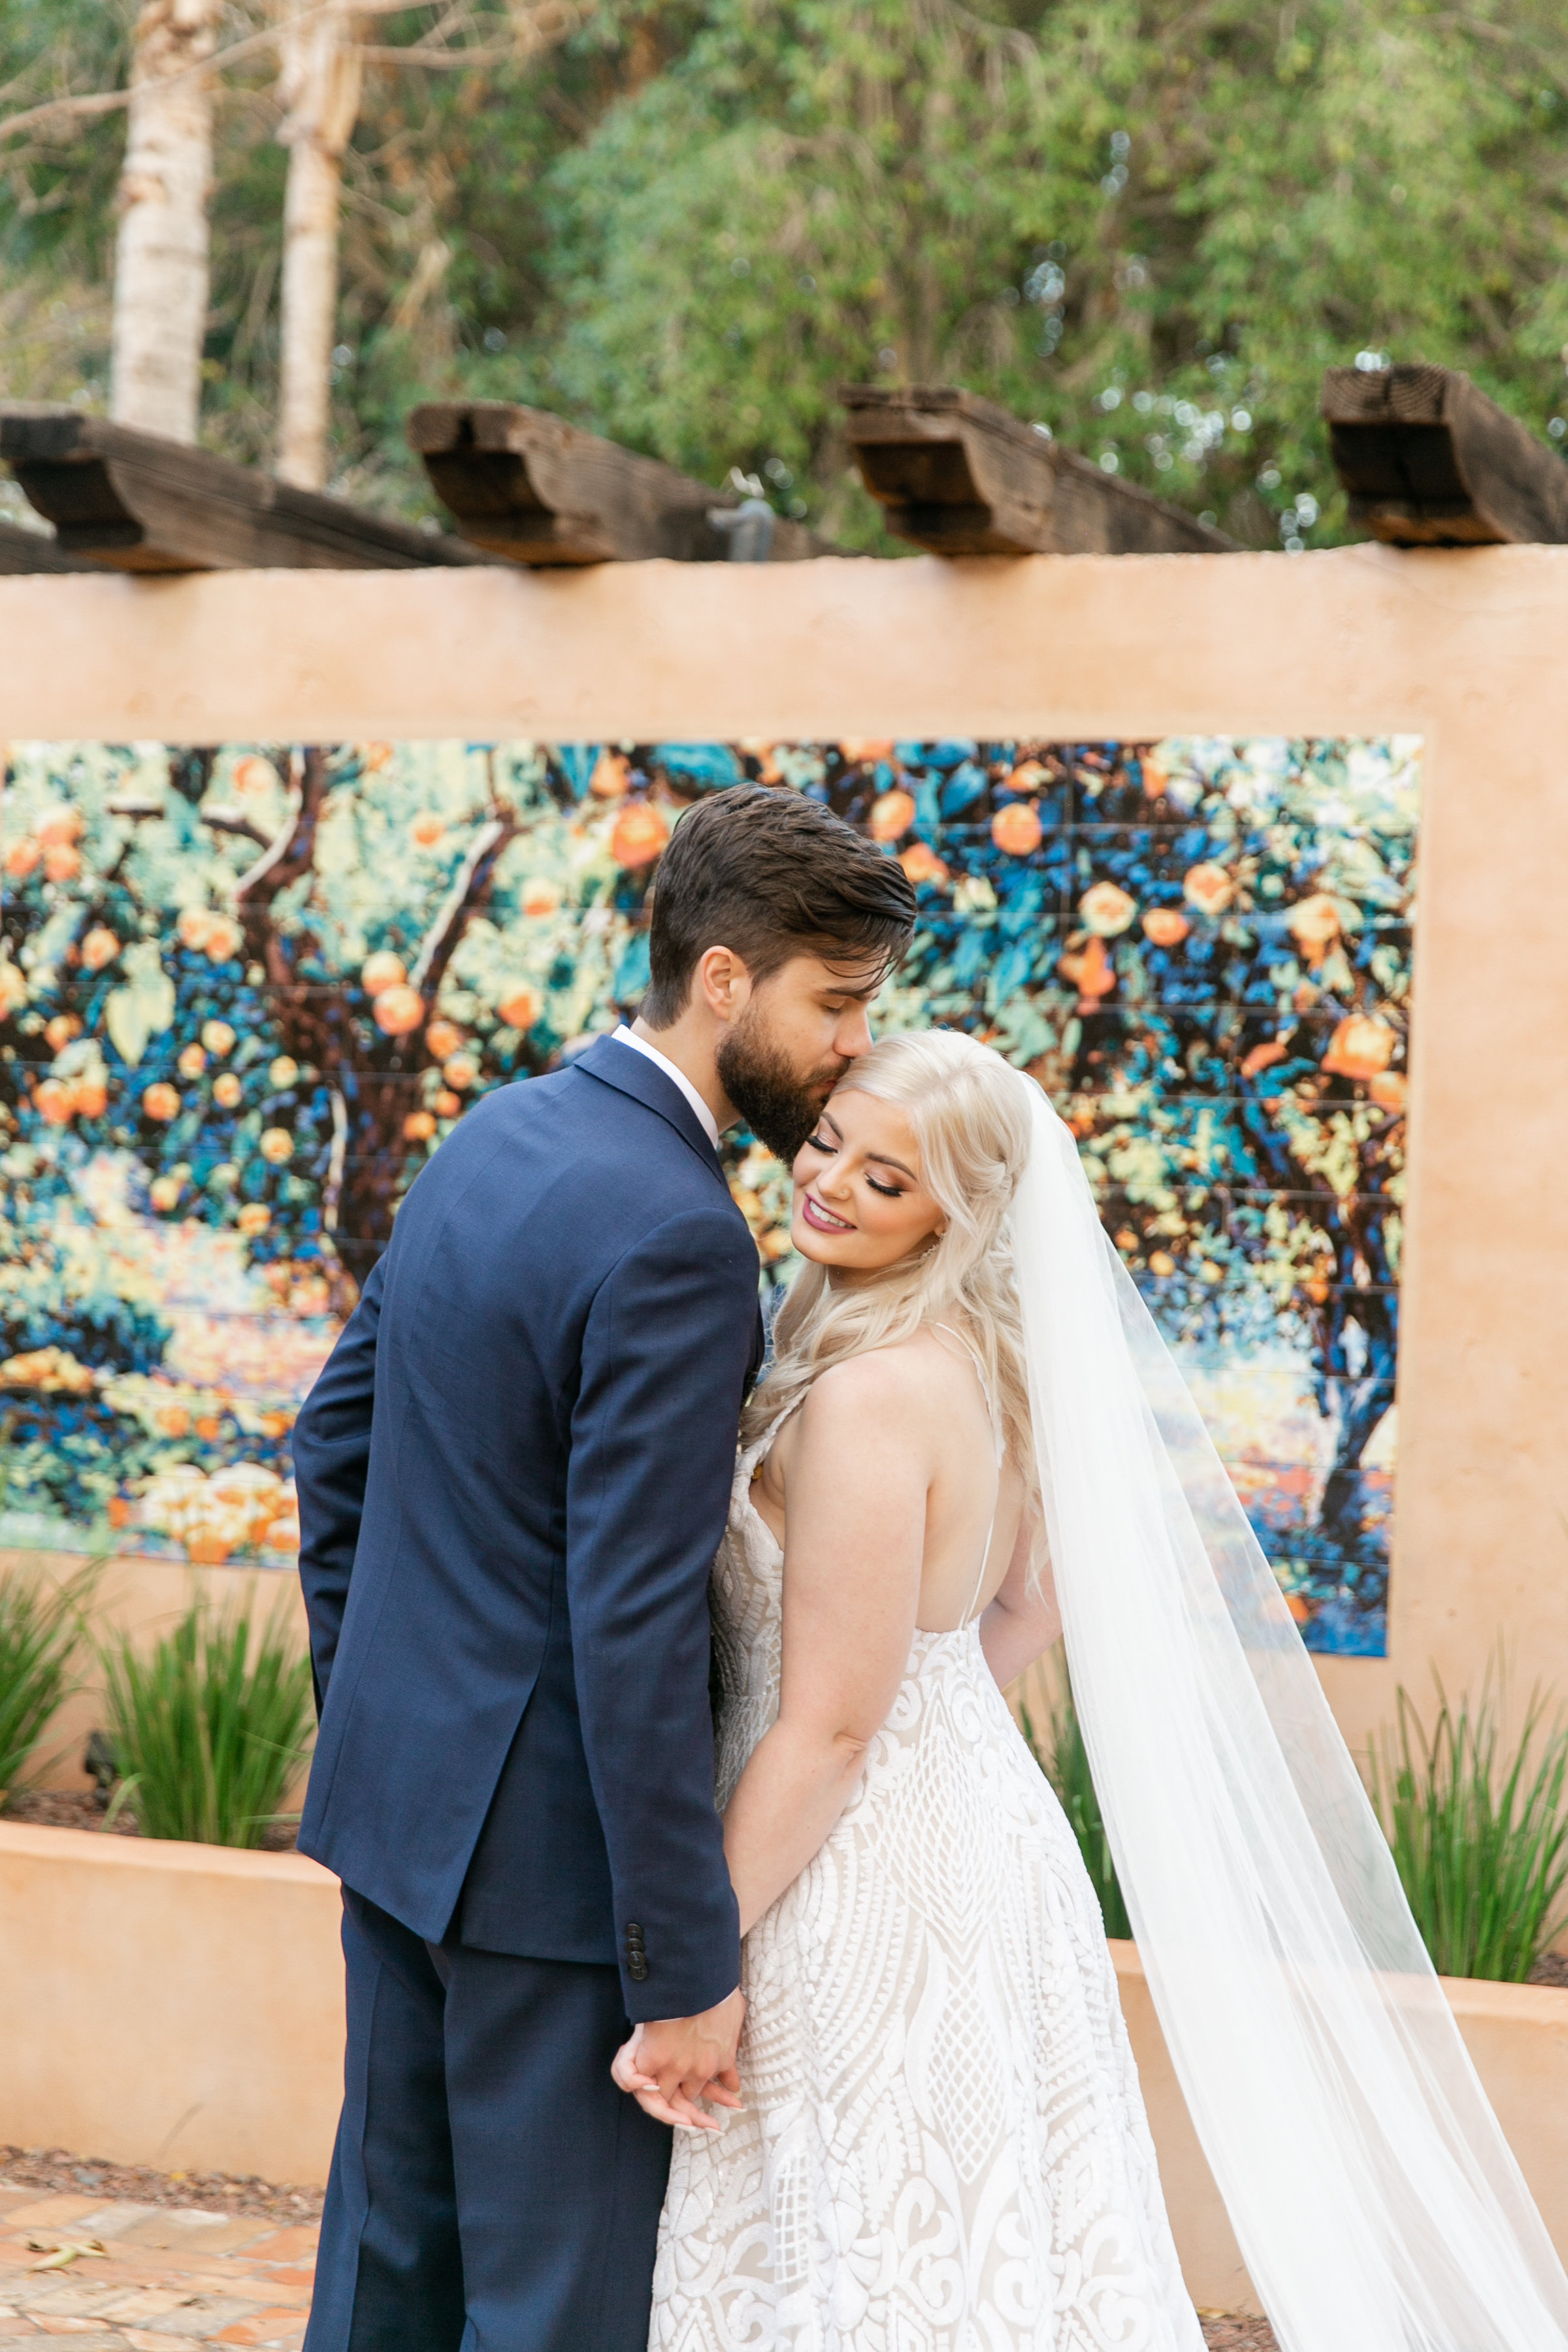 Karlie Colleen Photography - The Royal Palms Wedding - Some Like It Classic - Alex & Sam-526